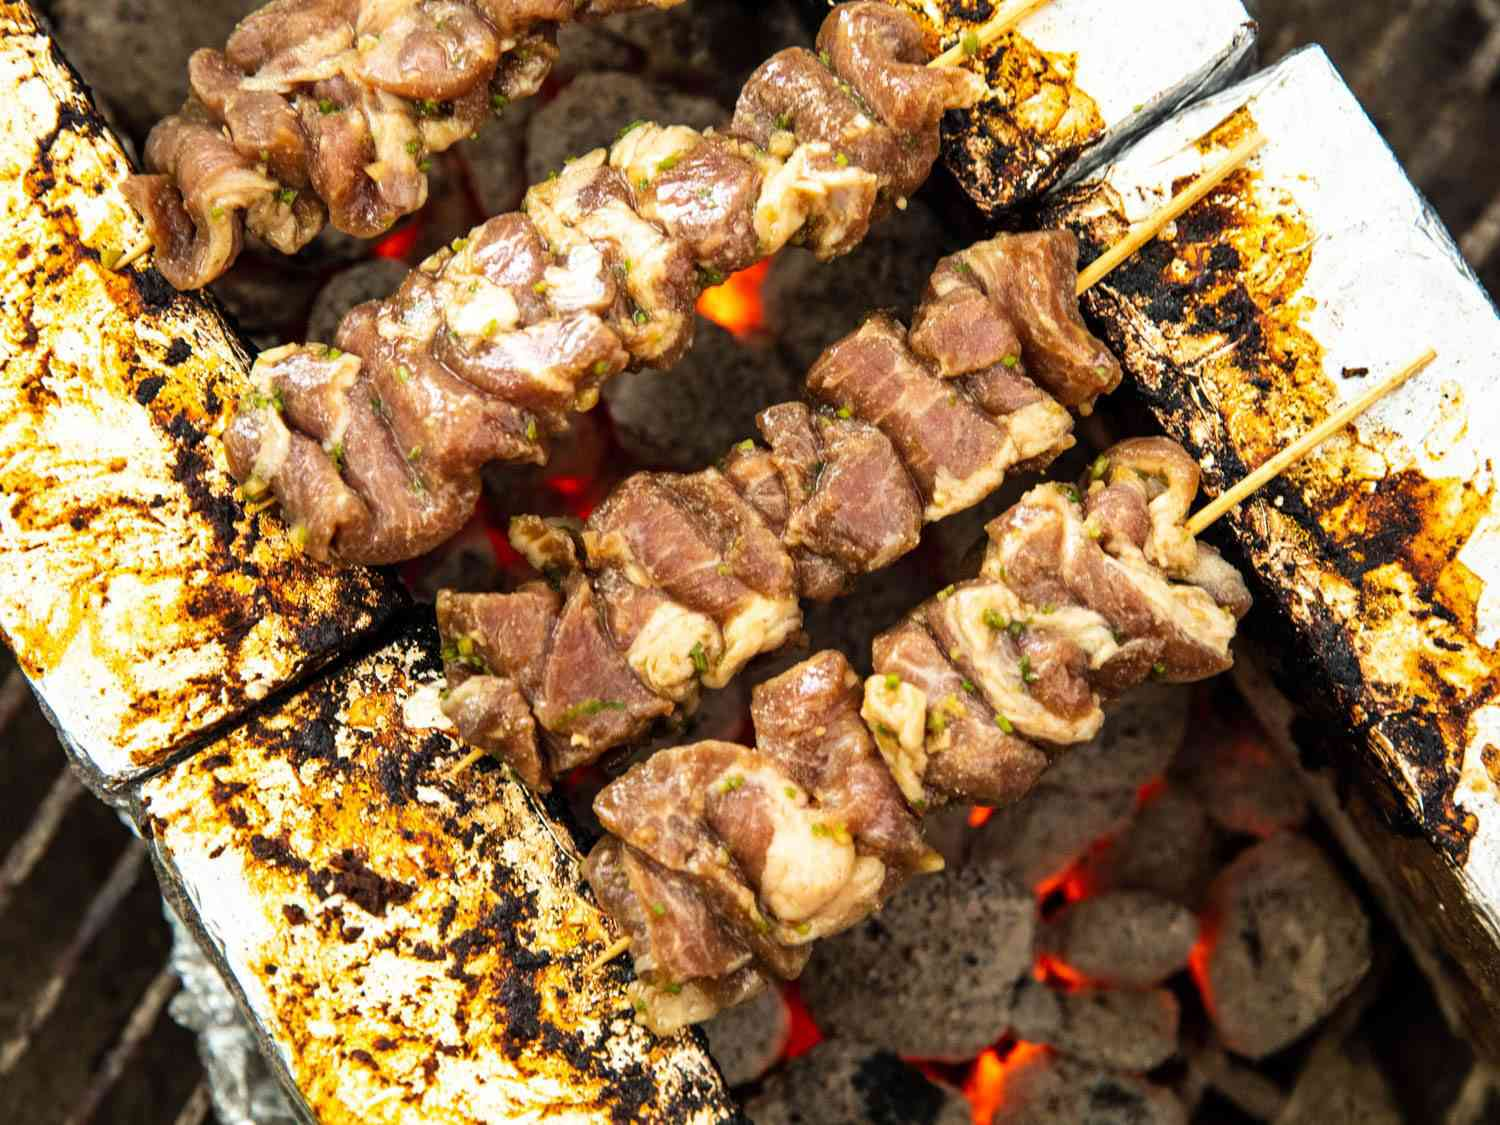 Four partially cooked pork Thai skewers on a brick stand over coals.